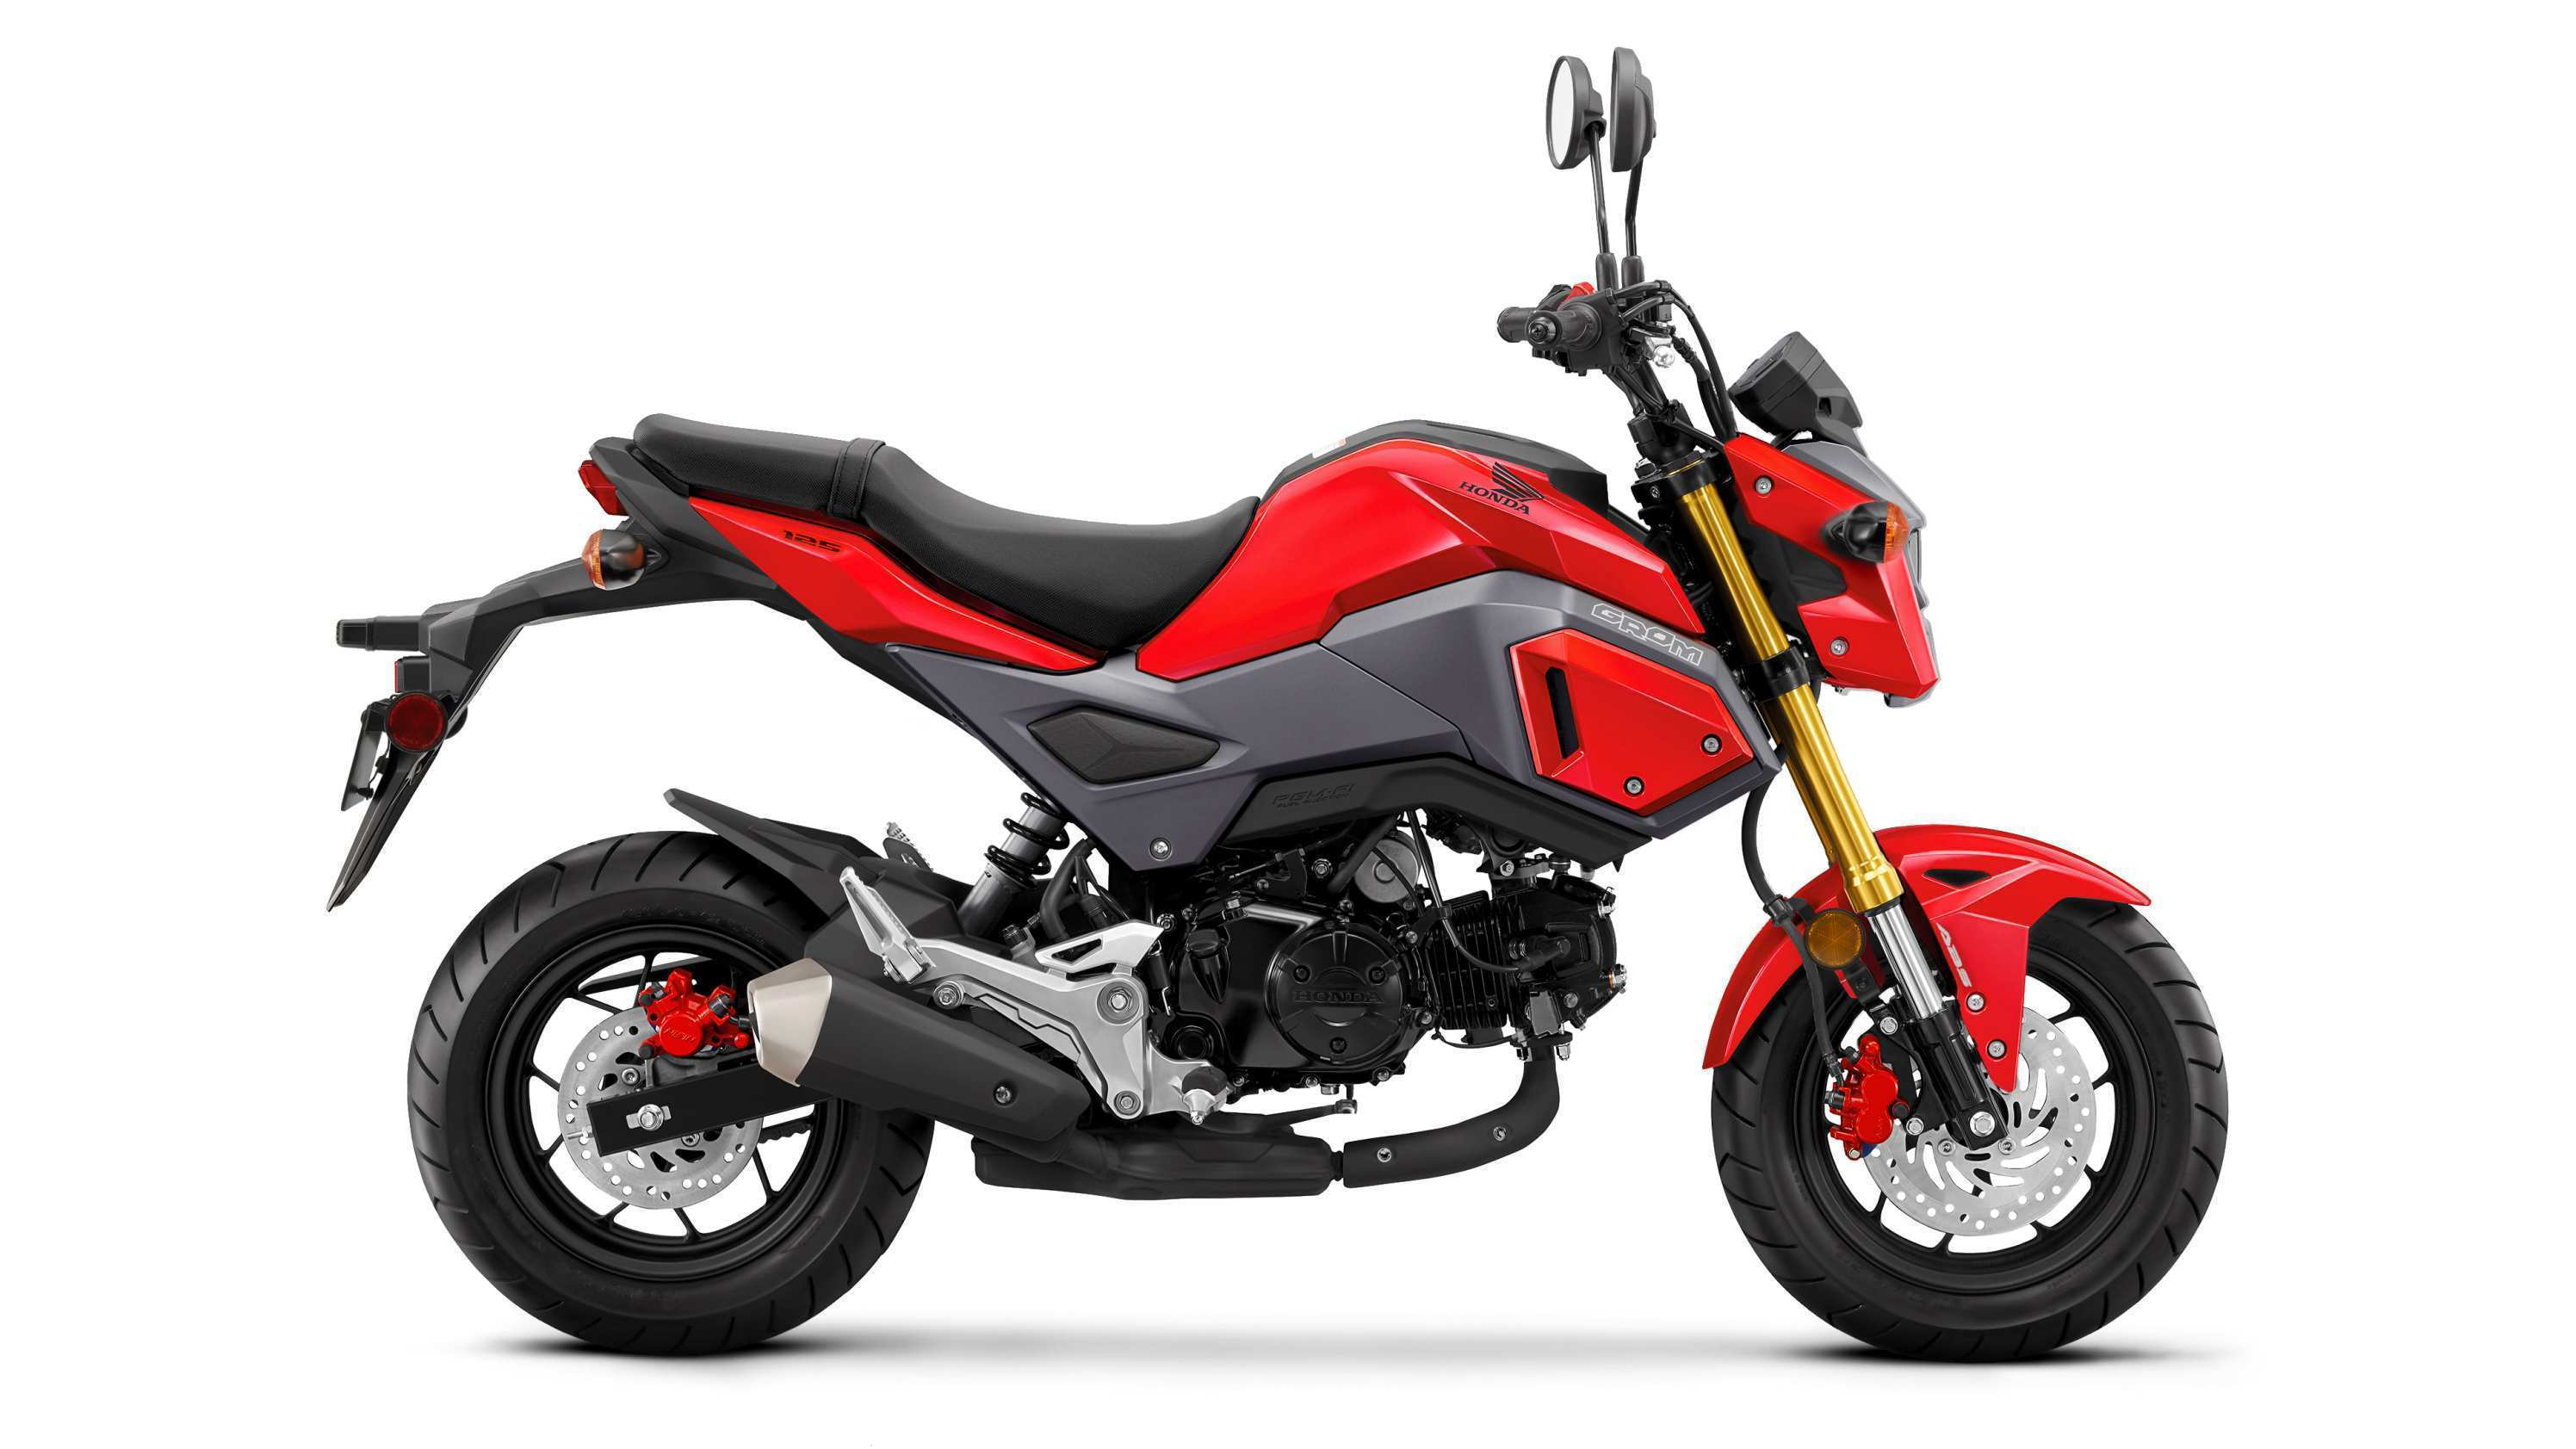 57 Gallery of 2020 Honda Grom Top Speed New Review with 2020 Honda Grom Top Speed